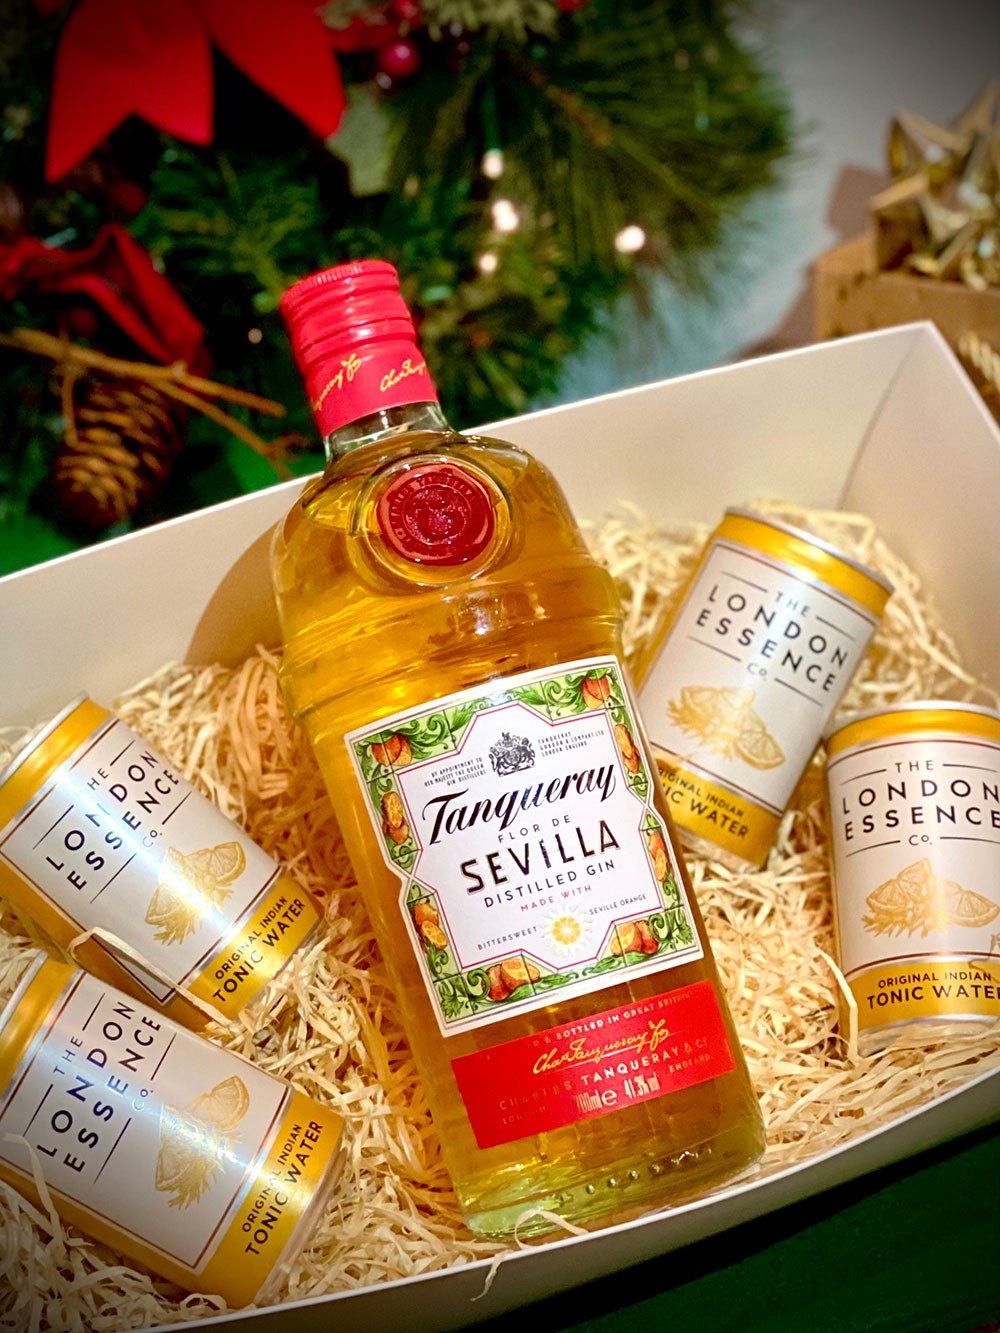 Gift Box - Tanqueray Sevilla Gin with 4 London Essence Tonics